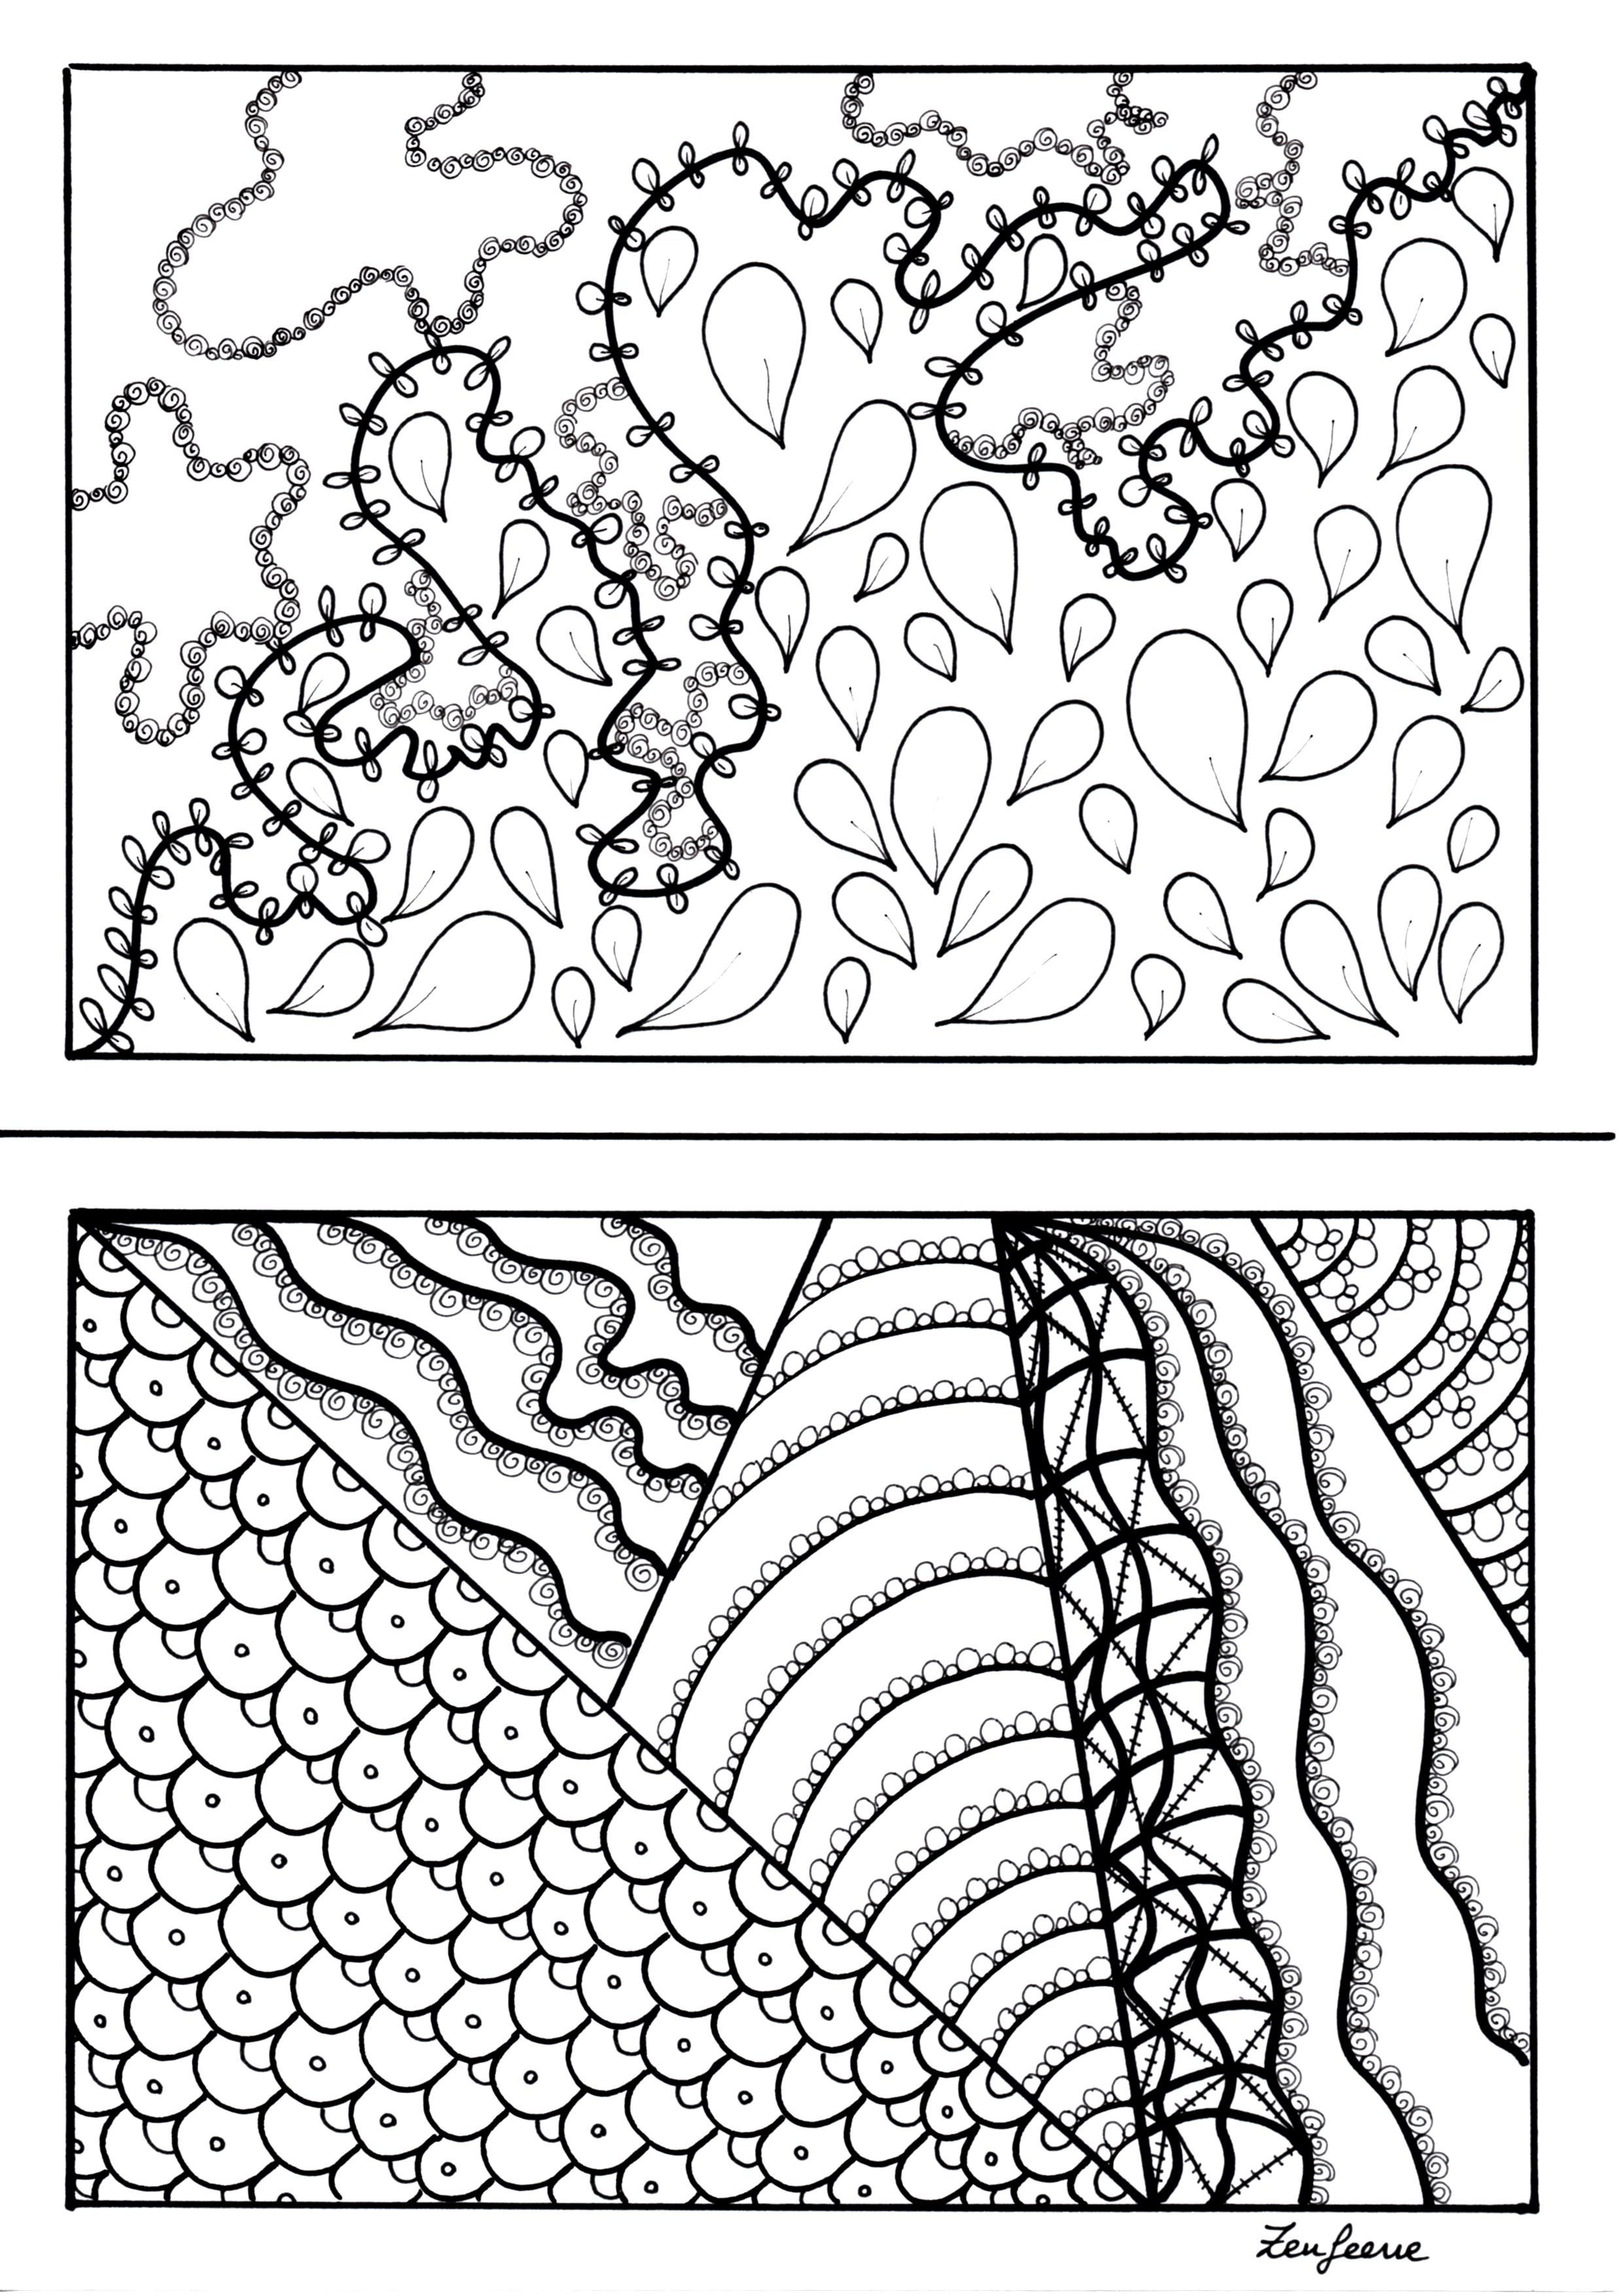 2 coloriages format A5, style Zentangle